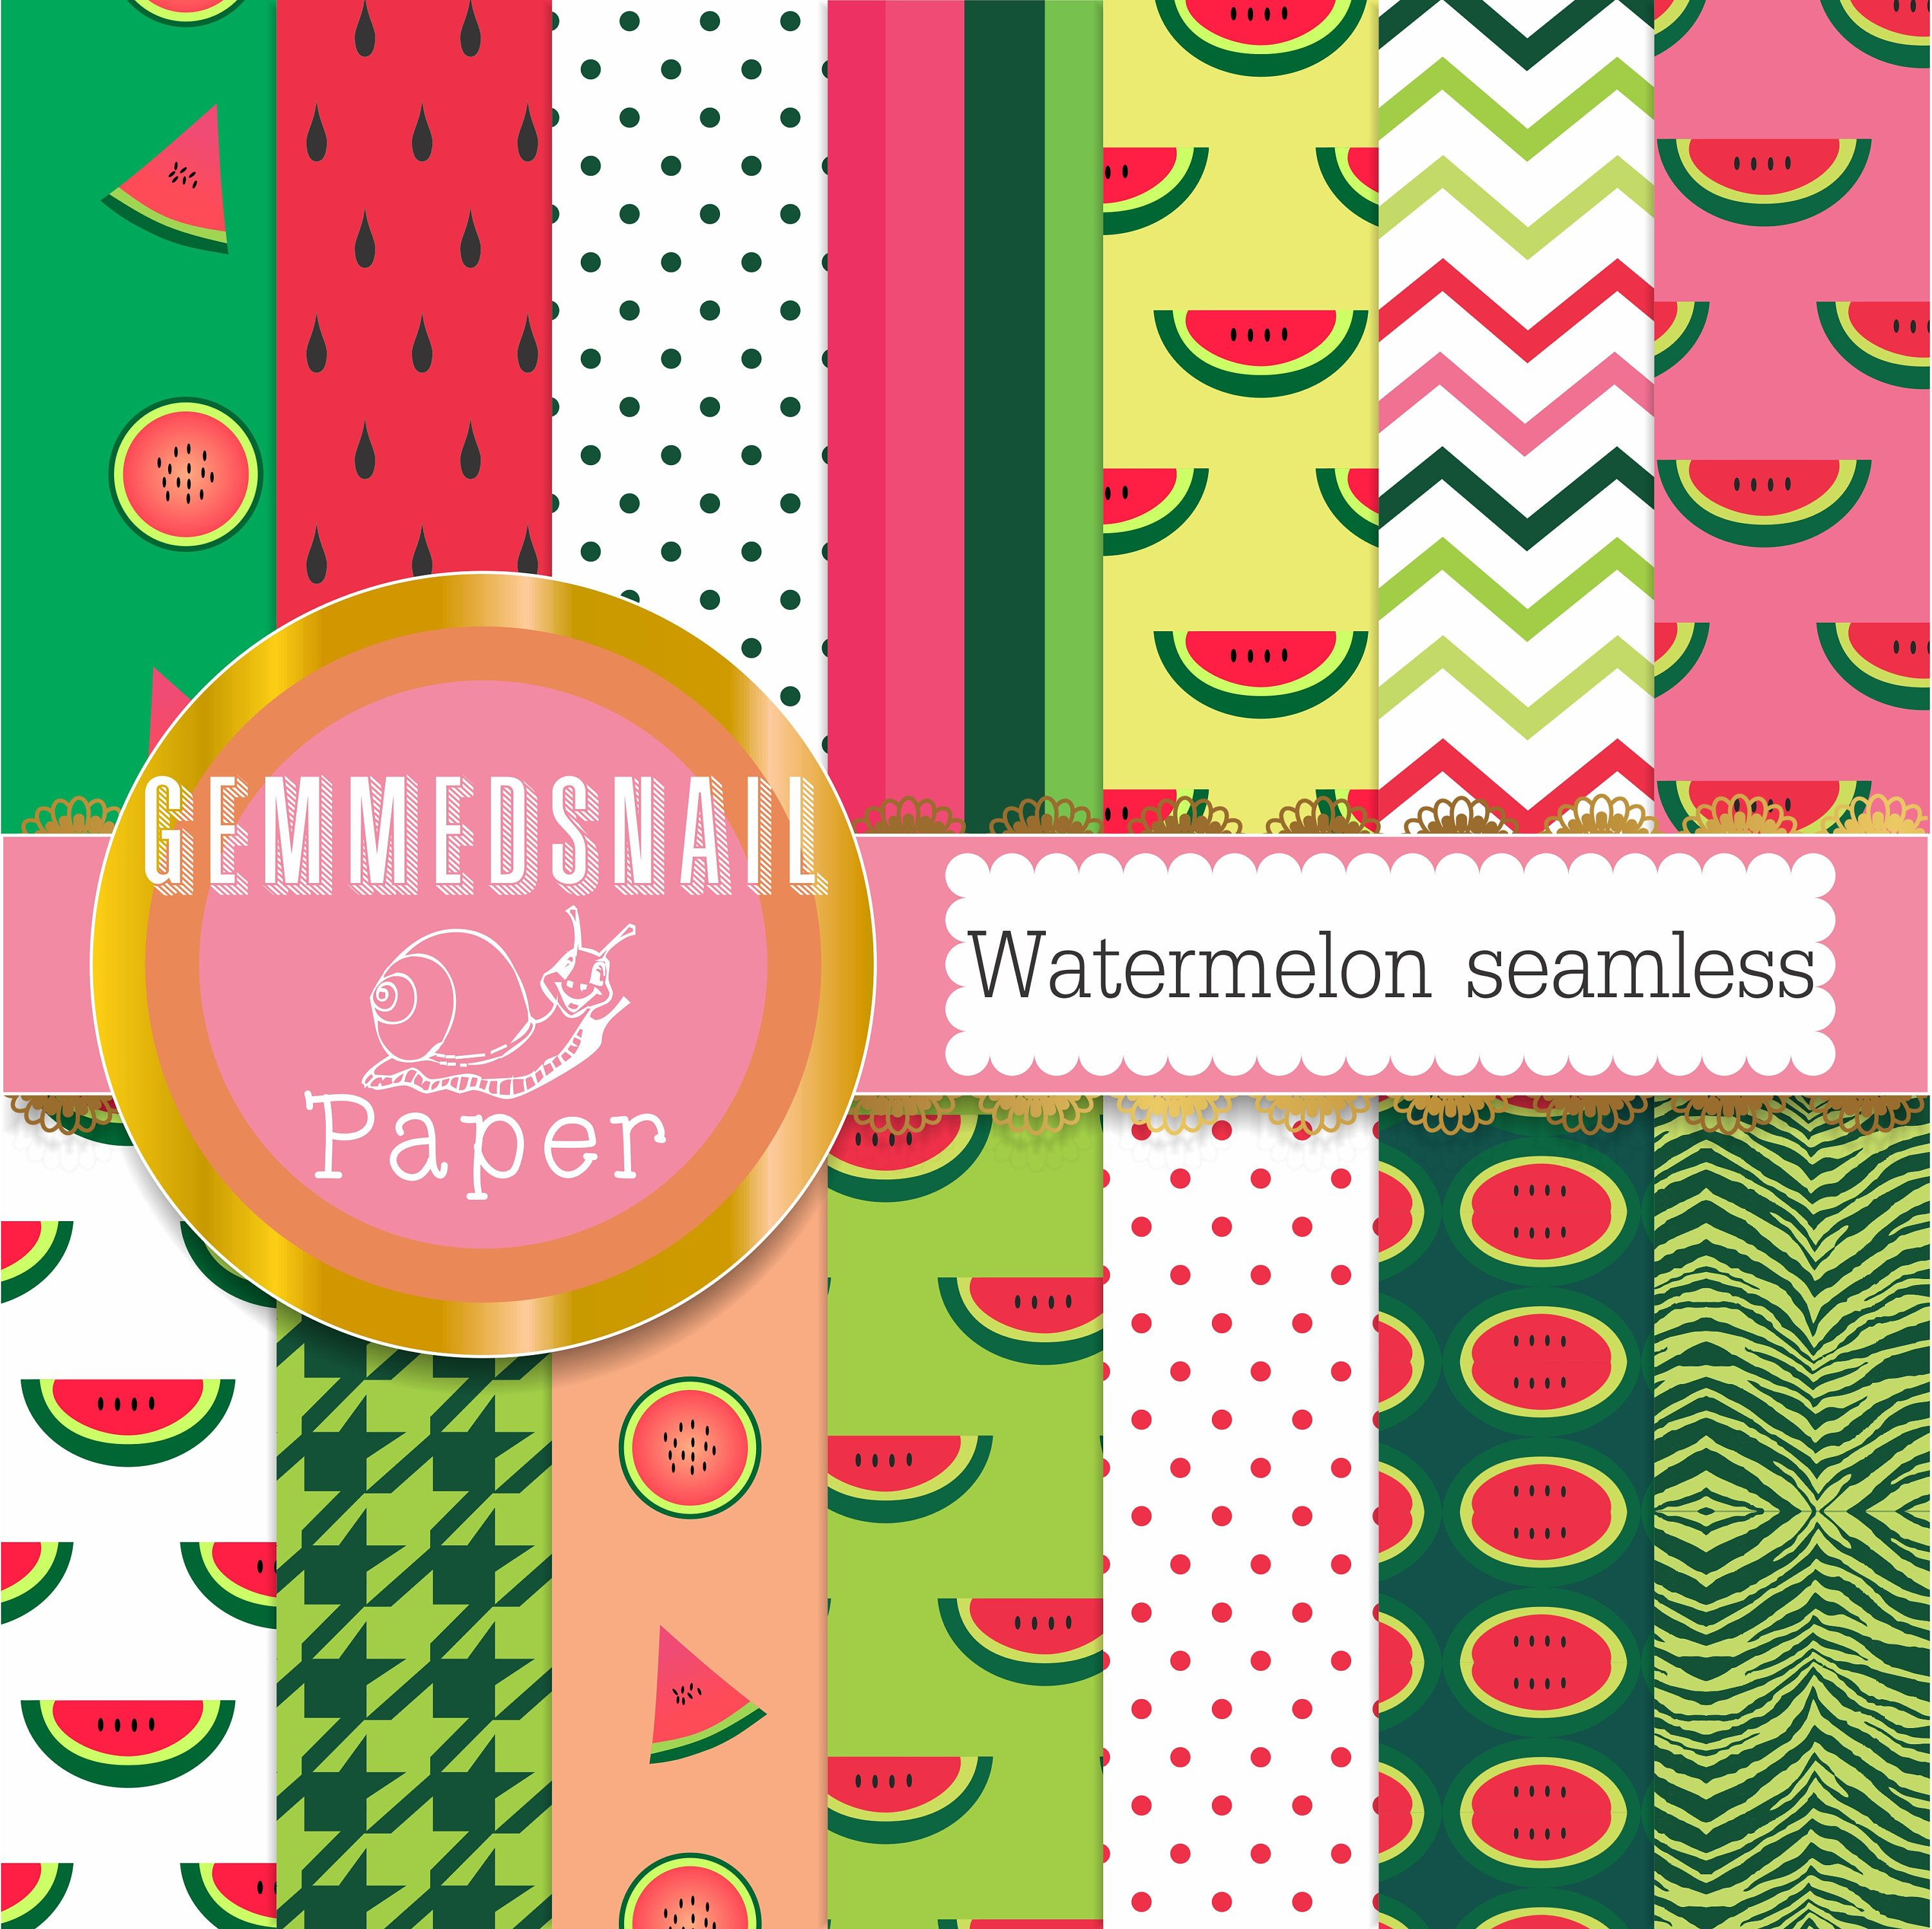 Watermelon digital paper seamless watermelon backgrounds in 12 watermelon digital paper seamless watermelon backgrounds in 12 patterns jeuxipadfo Image collections